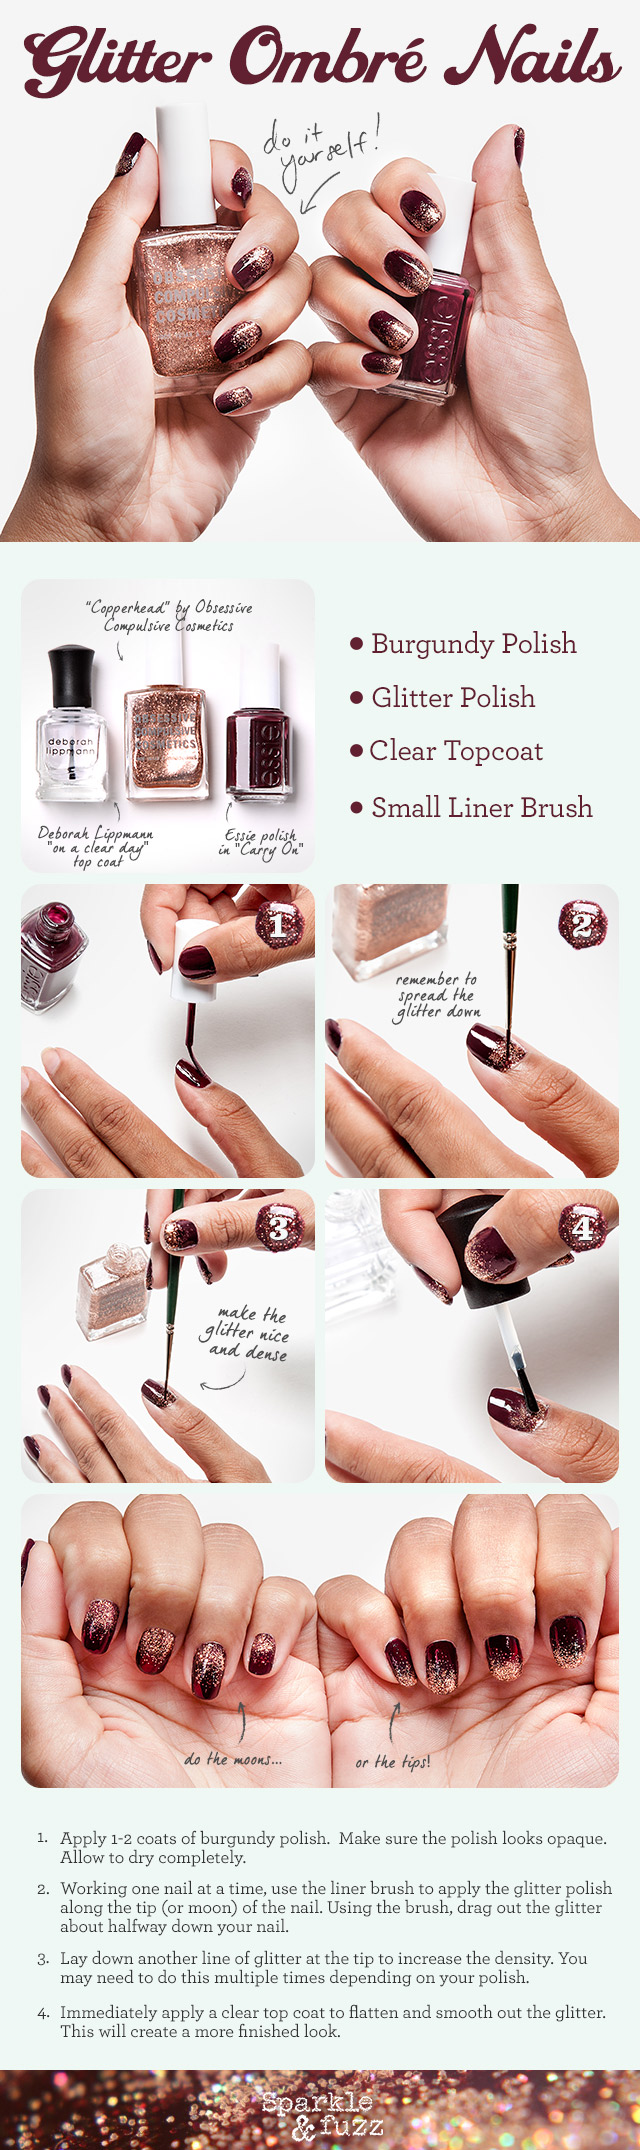 Welcome to how to questions ke beautiful nails 16 step by step nail tutorials solutioingenieria Images